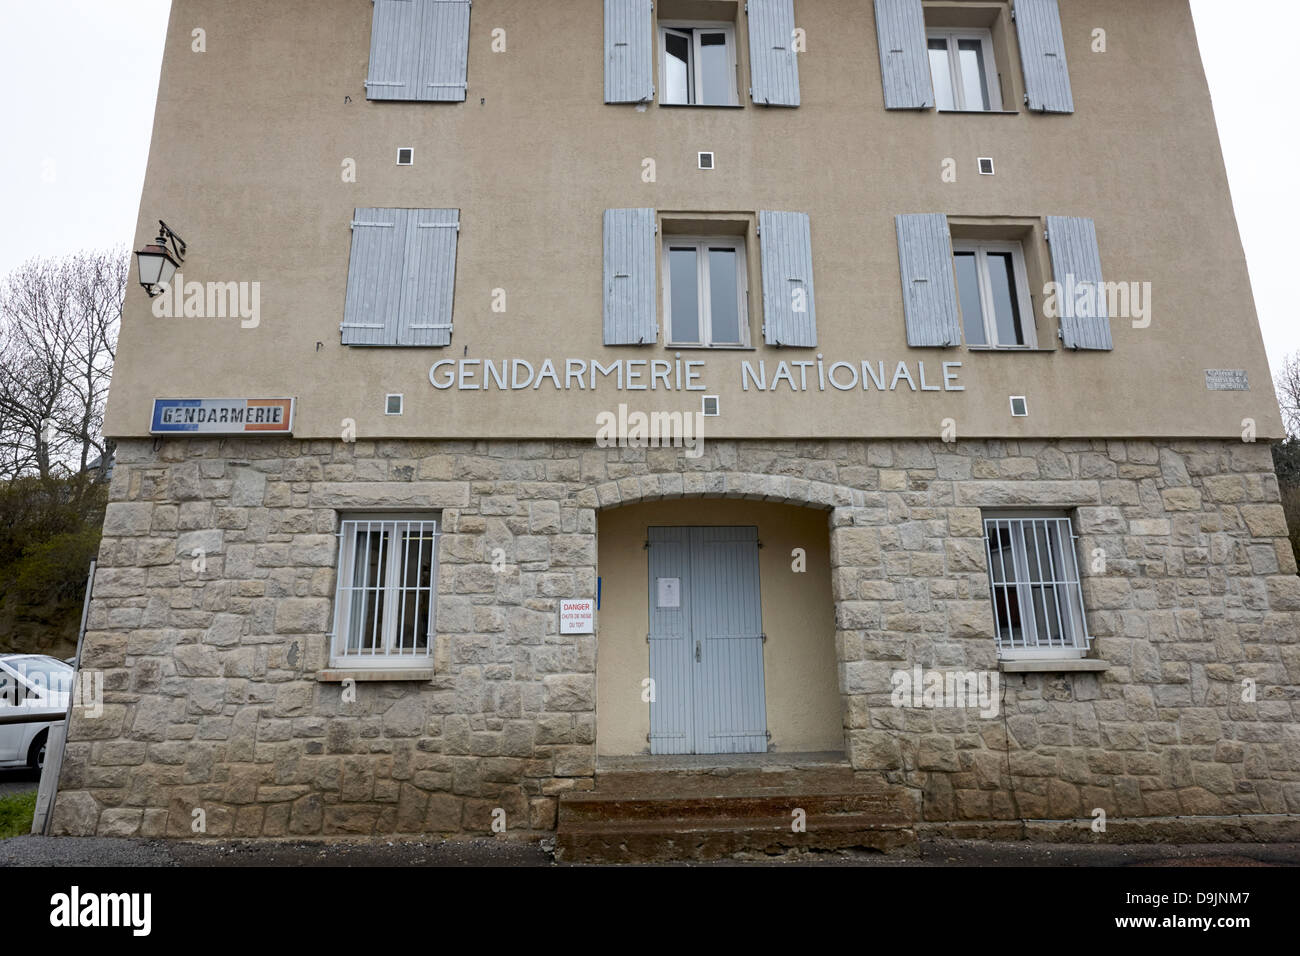 gendarmerie nationale police station mont-louis pyrenees-orientales france - Stock Image